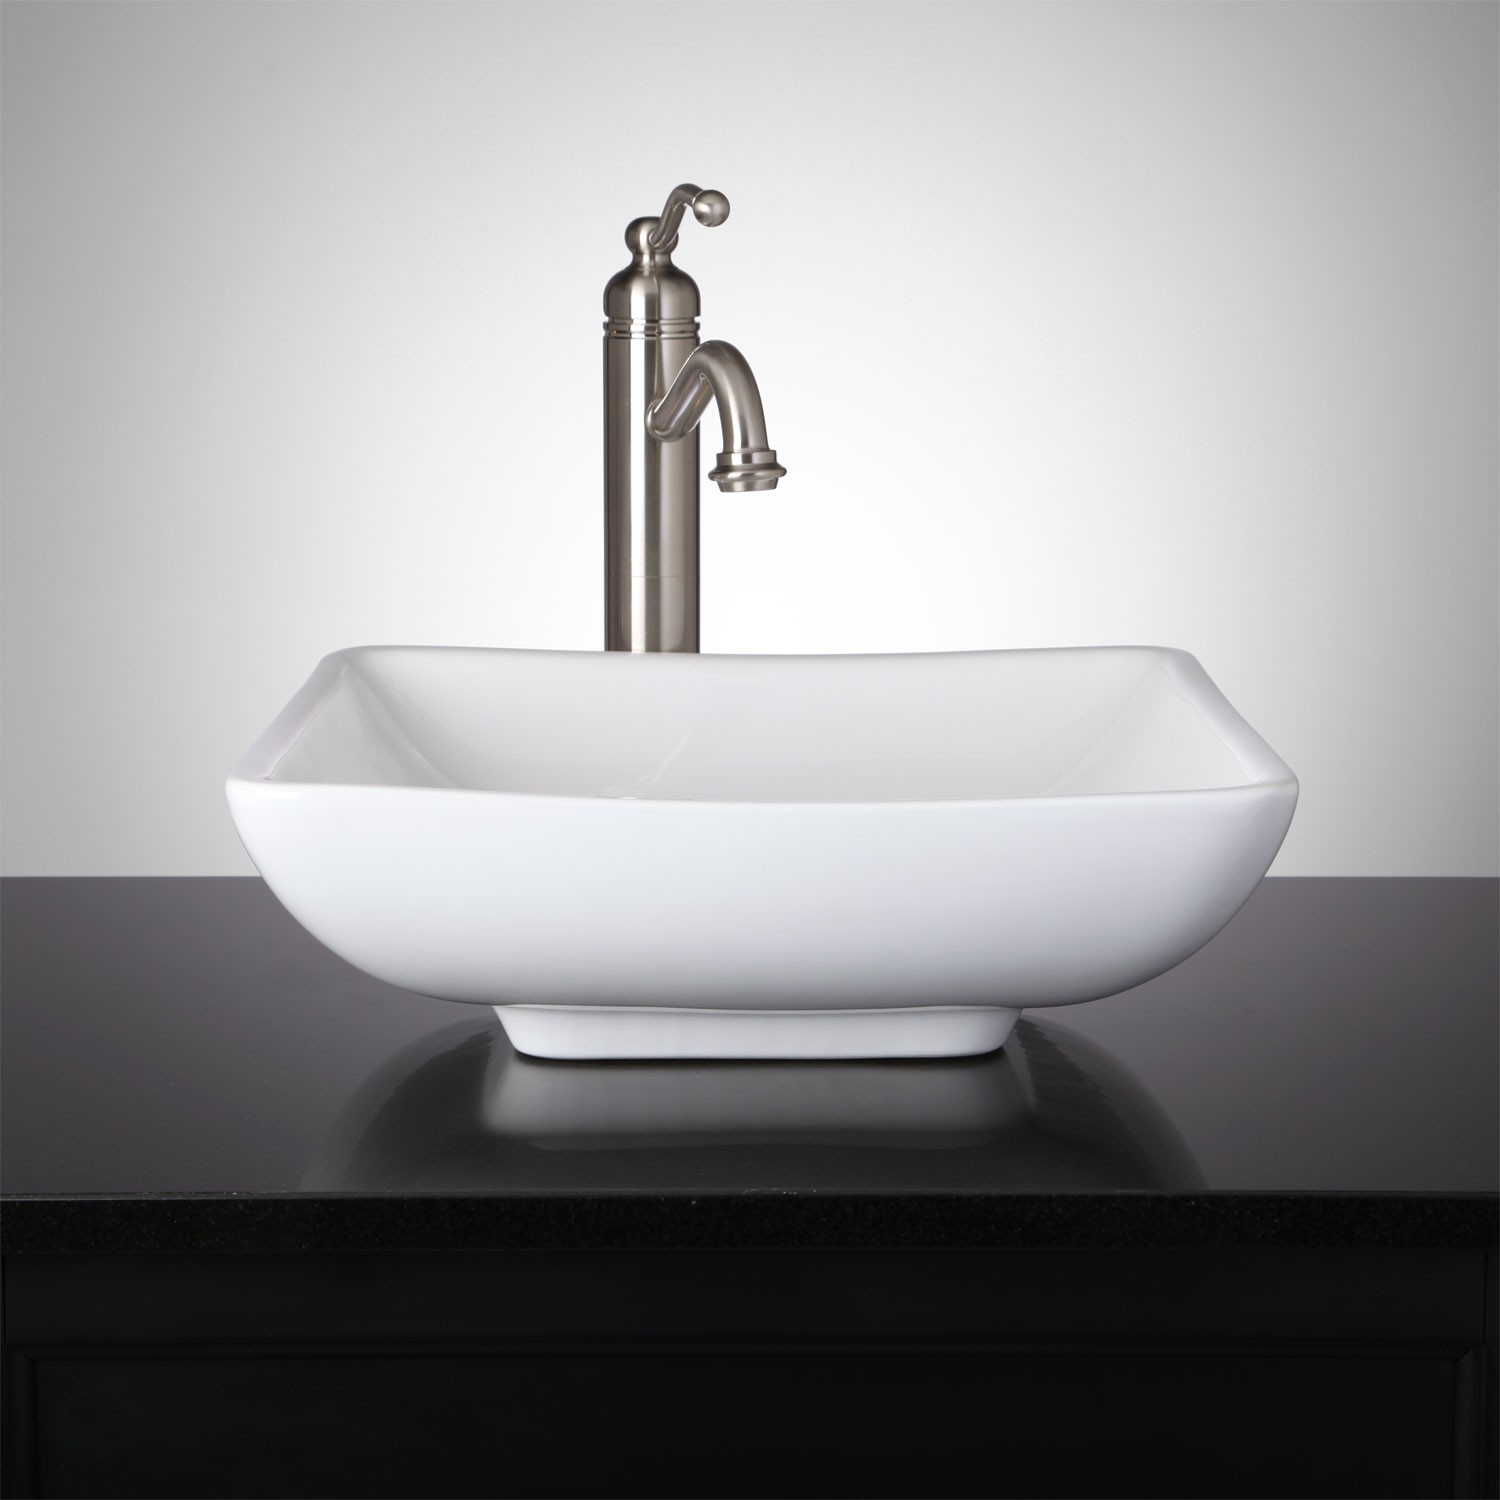 square vessel sinks with faucets square vessel sinks with faucets mirach square porcelain vessel sink bathroom 1500 x 1500